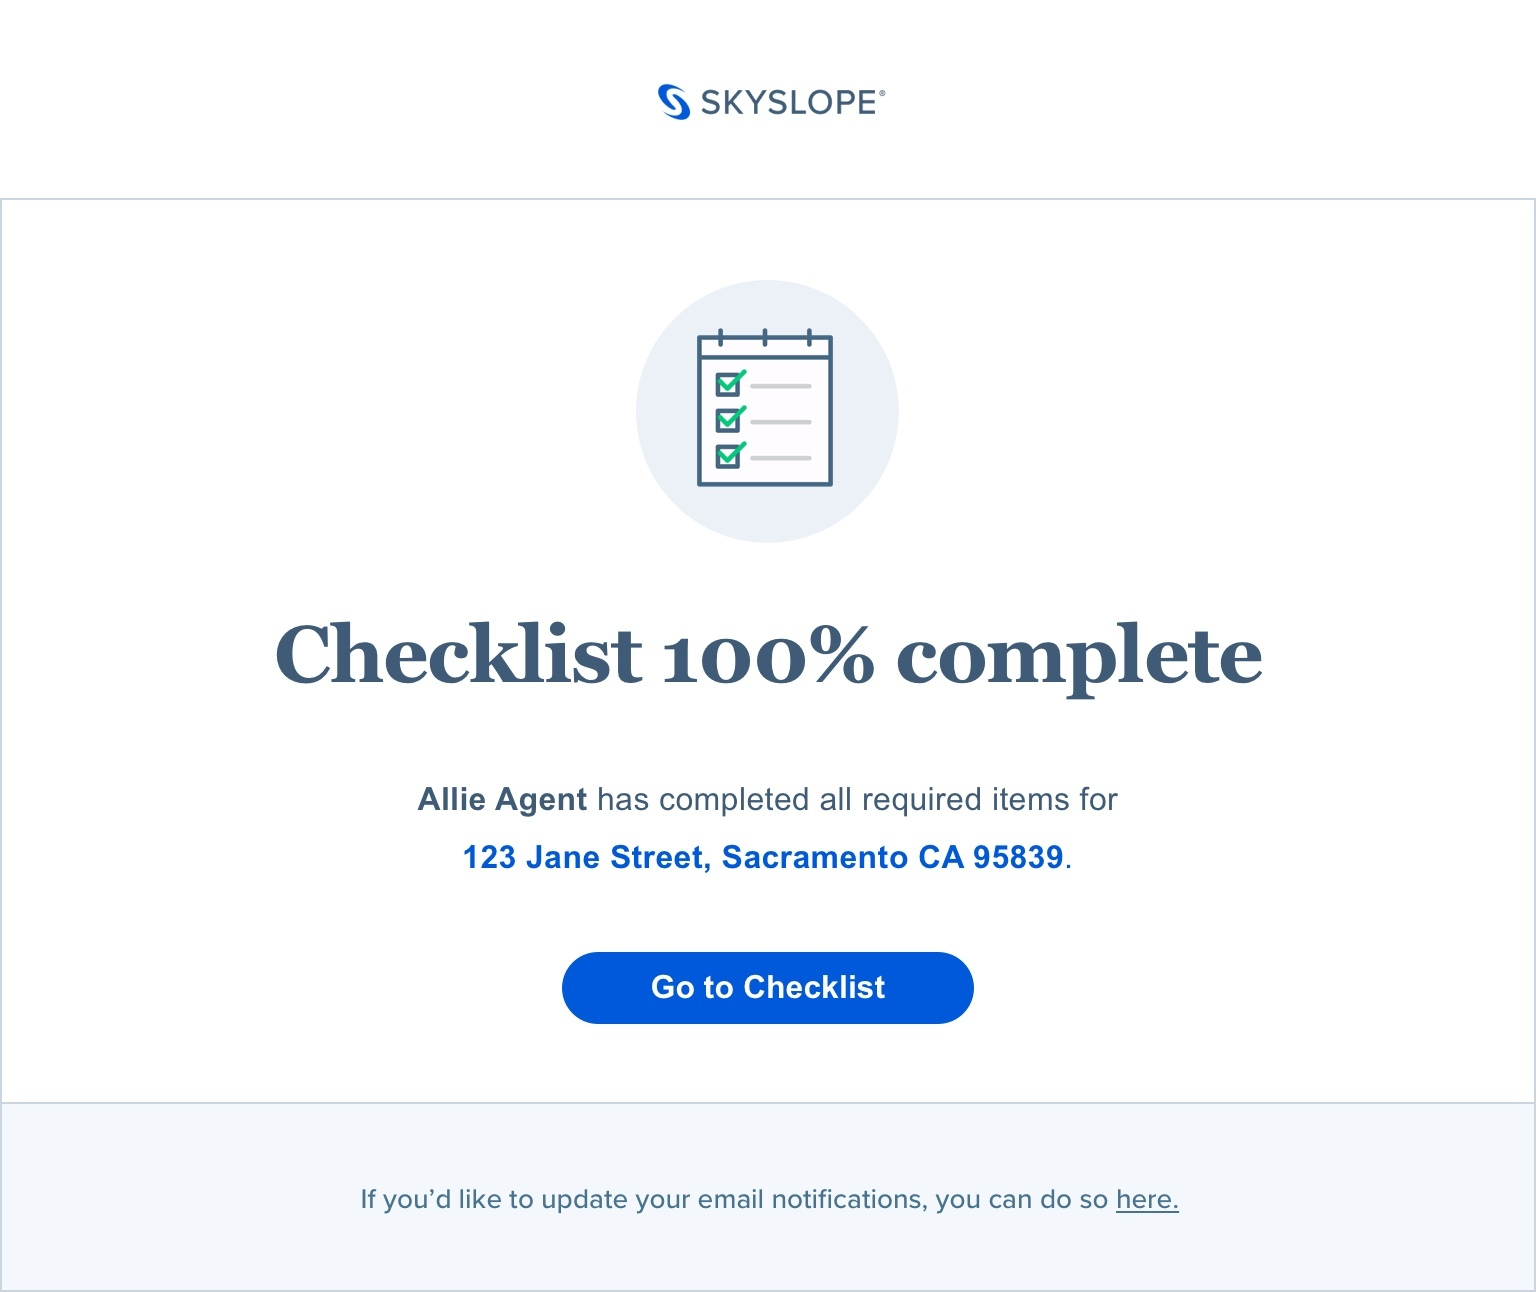 checklist_complete_email